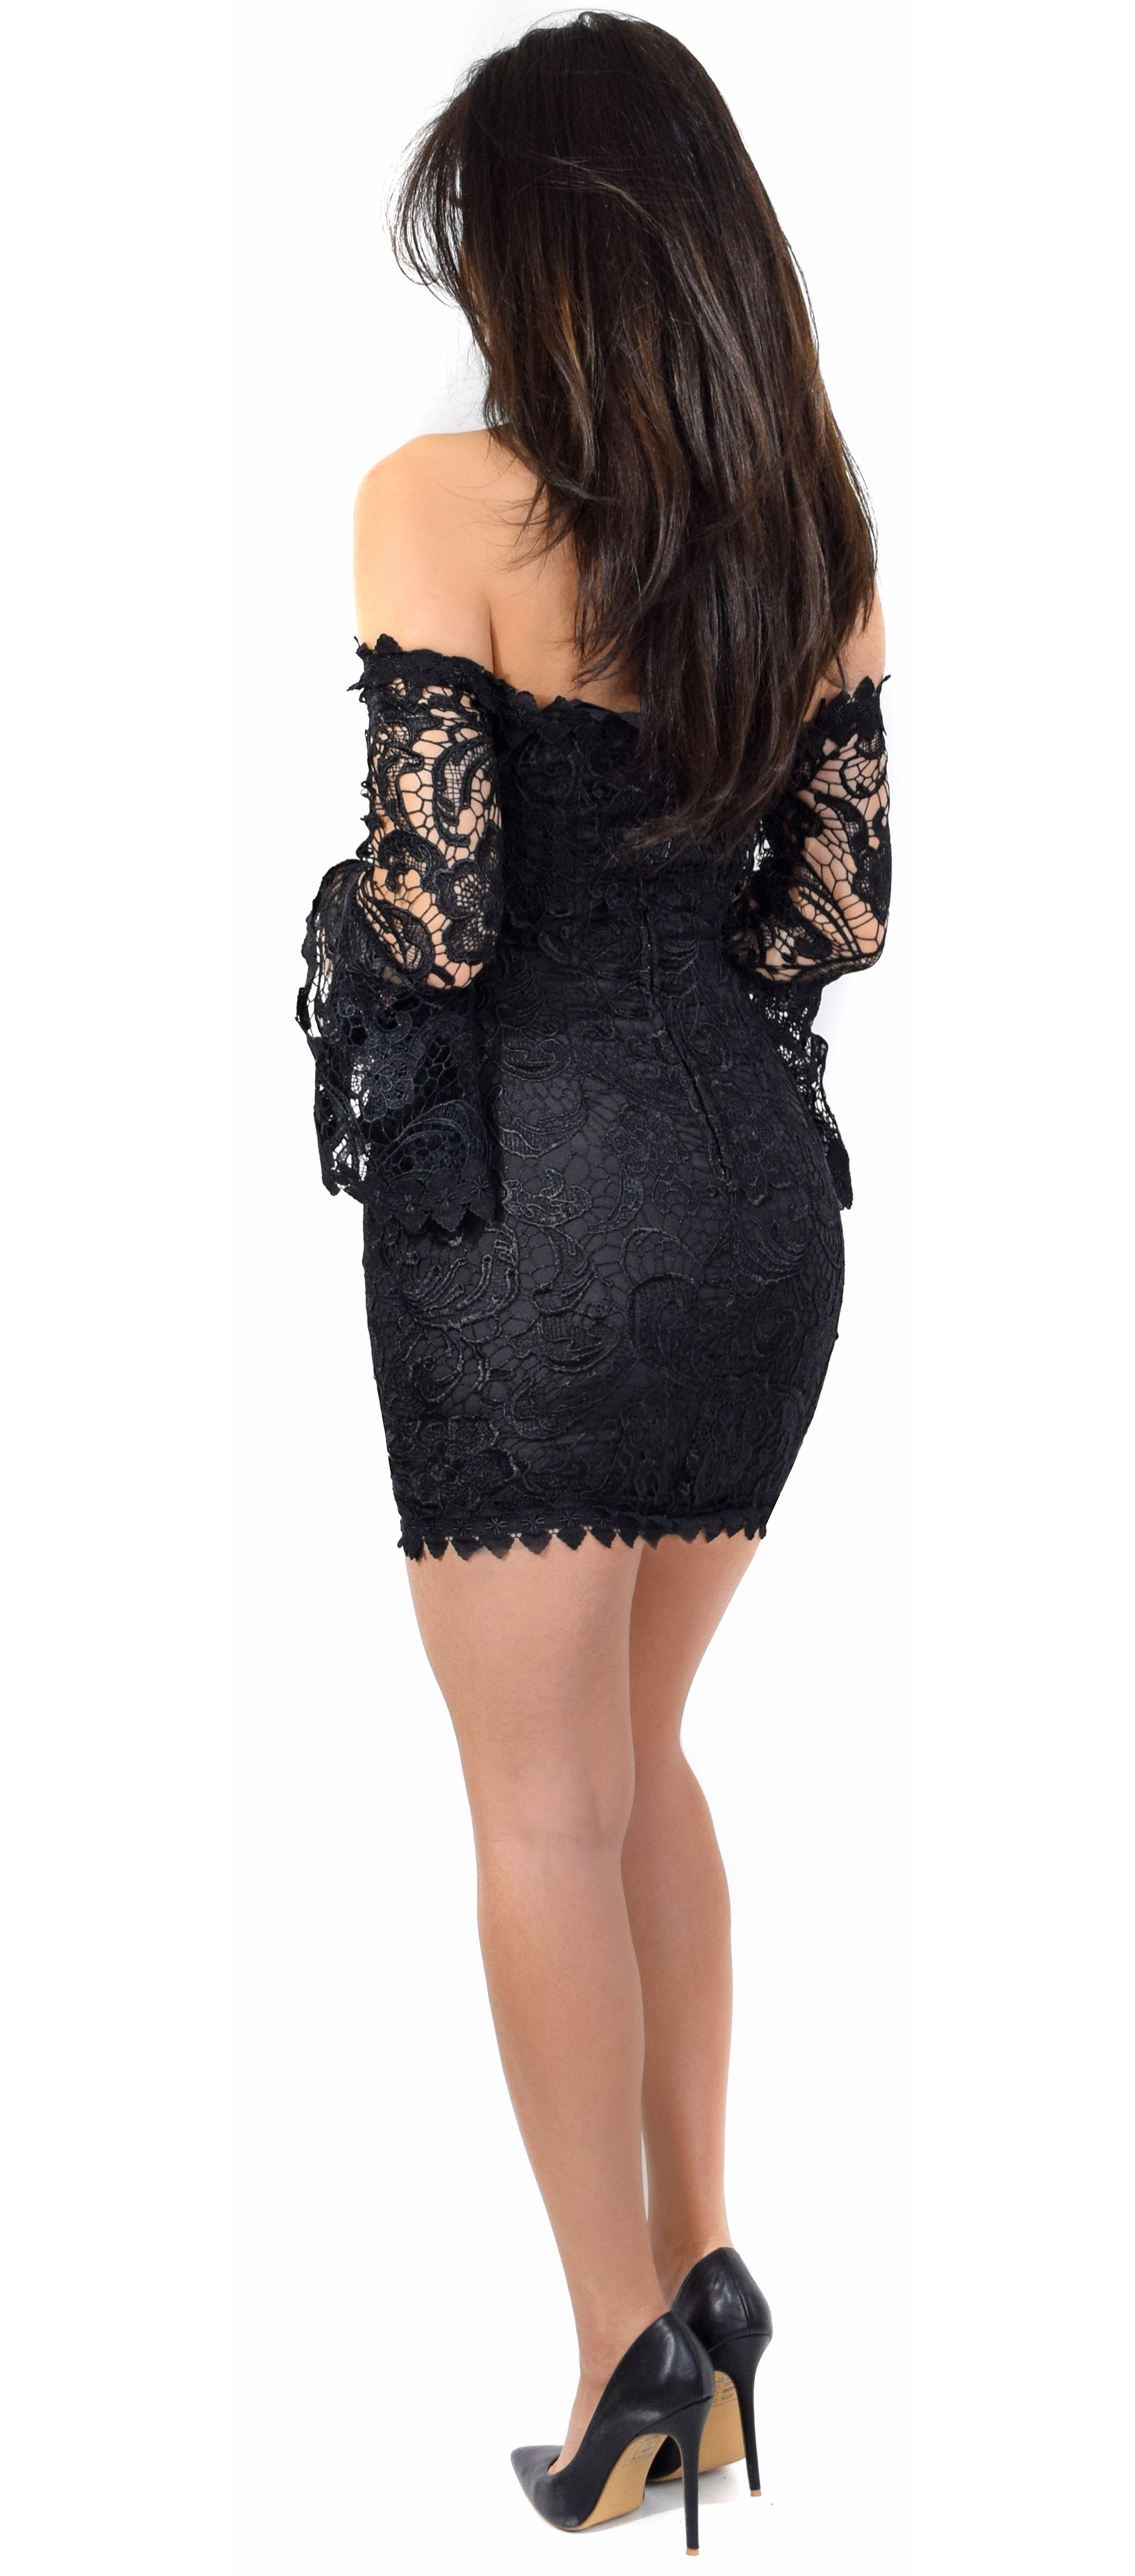 Lula Black Crochet Lace Off Shoulder Dress